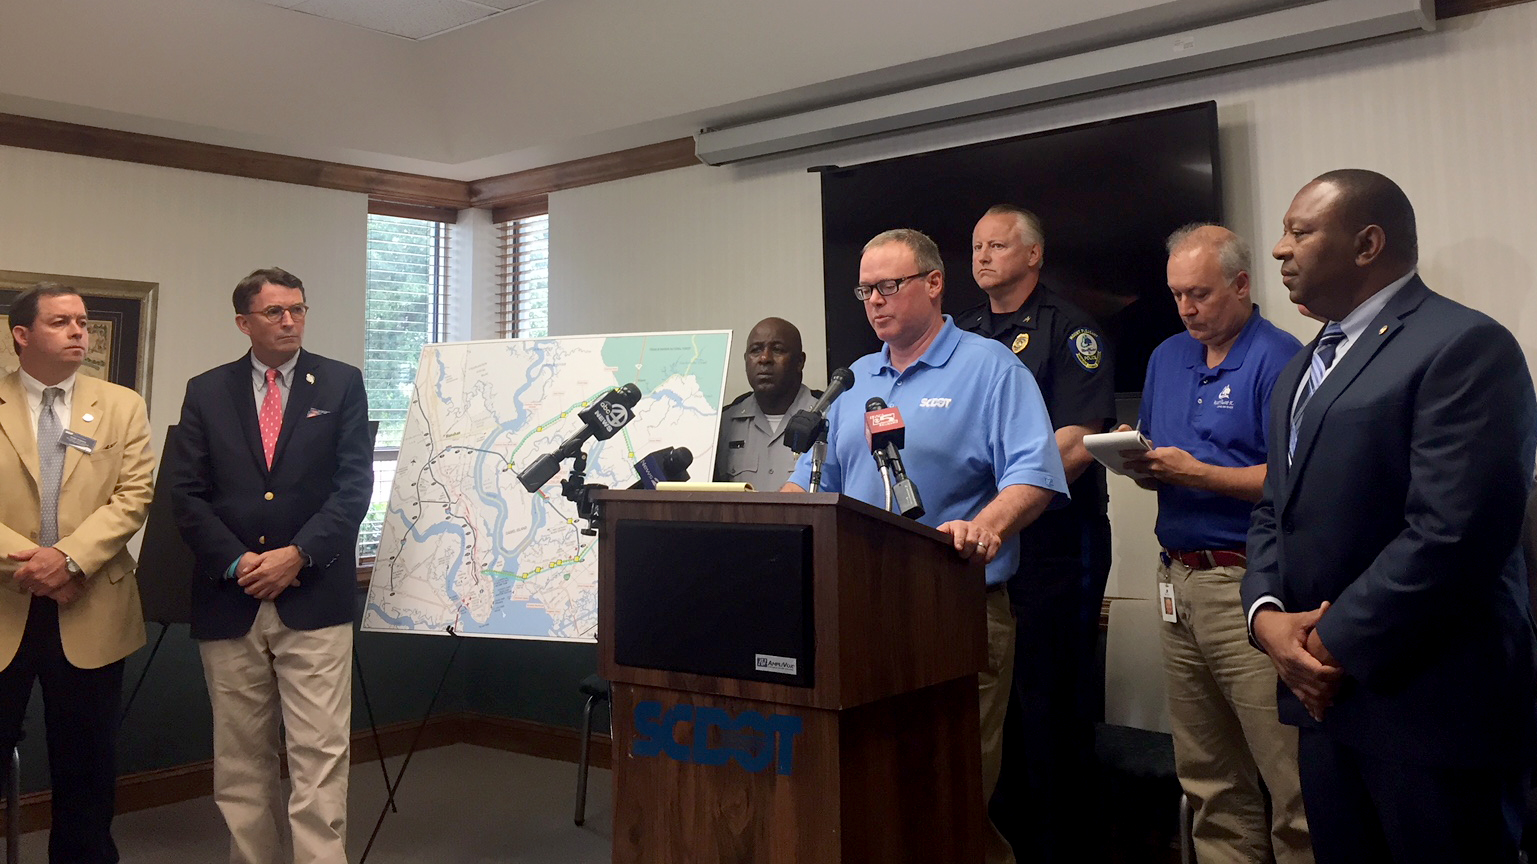 Local and state government and law enforcement officials talk about the status of the Interstate 526 bridge over the Wando River today. (Photo/Liz Segrist)